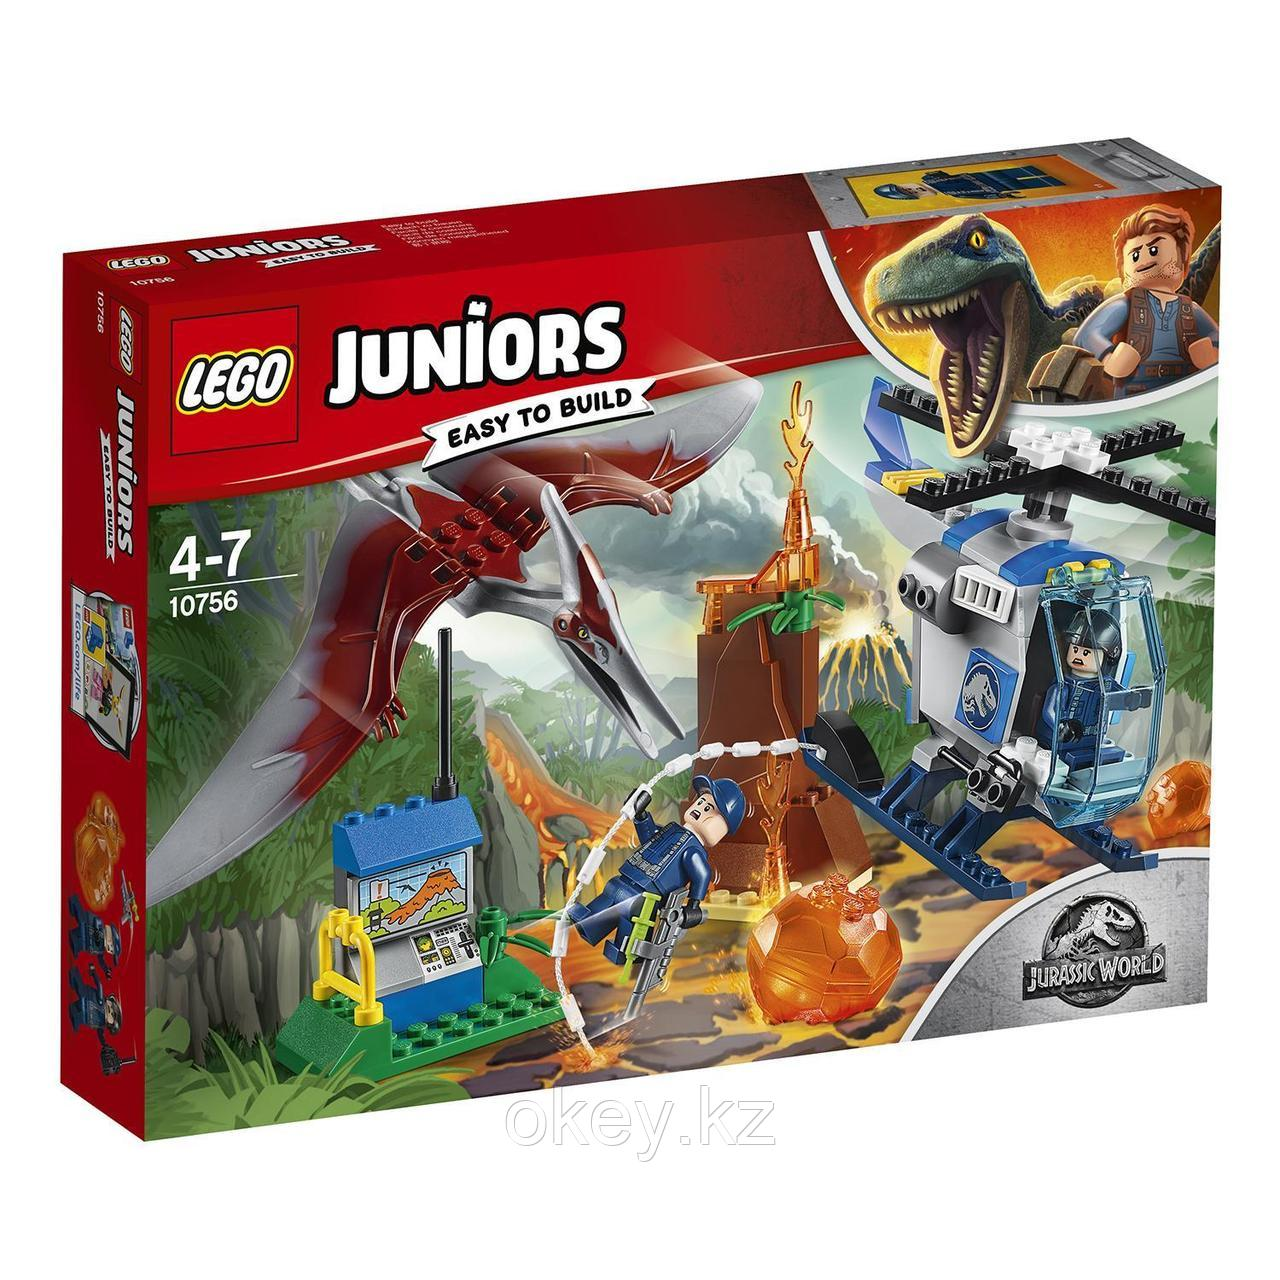 LEGO Juniors: Jurassic World — Побег птеранодона 10756